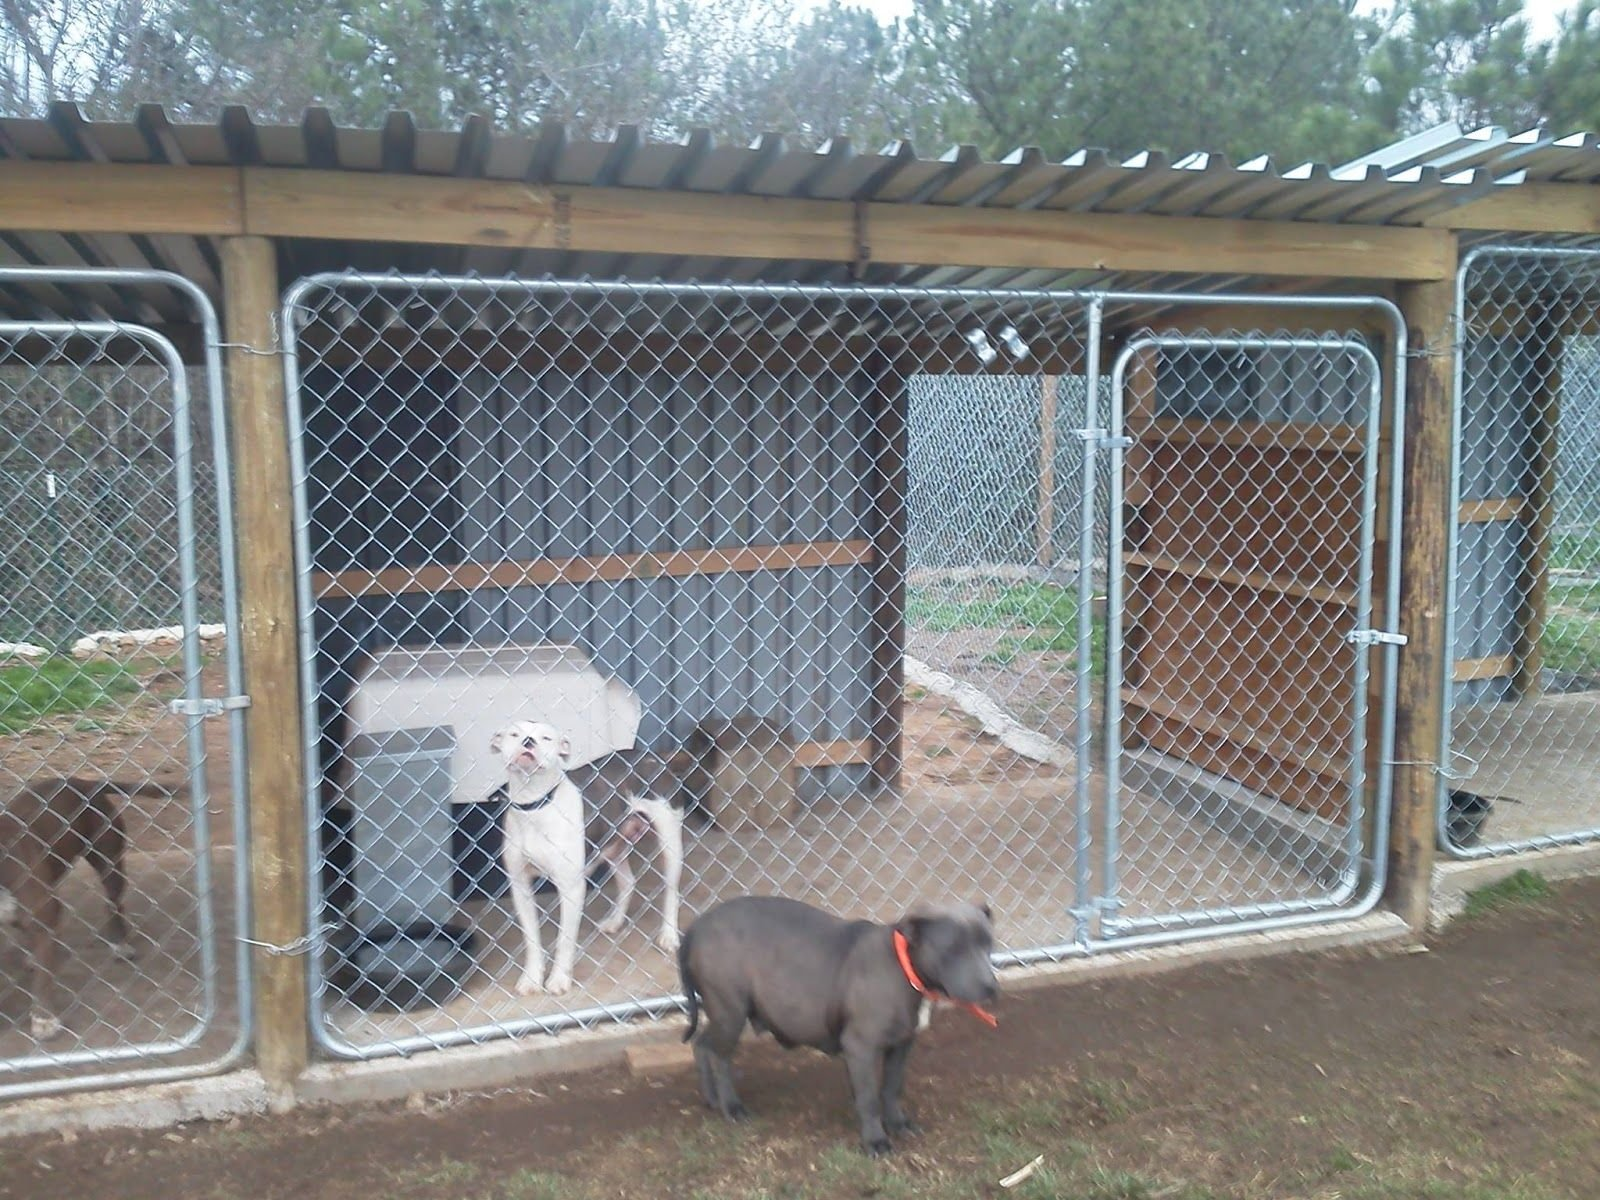 17.kennel setup with plywood in the middle to prevent fights and dogs via SIMPHOME.COM